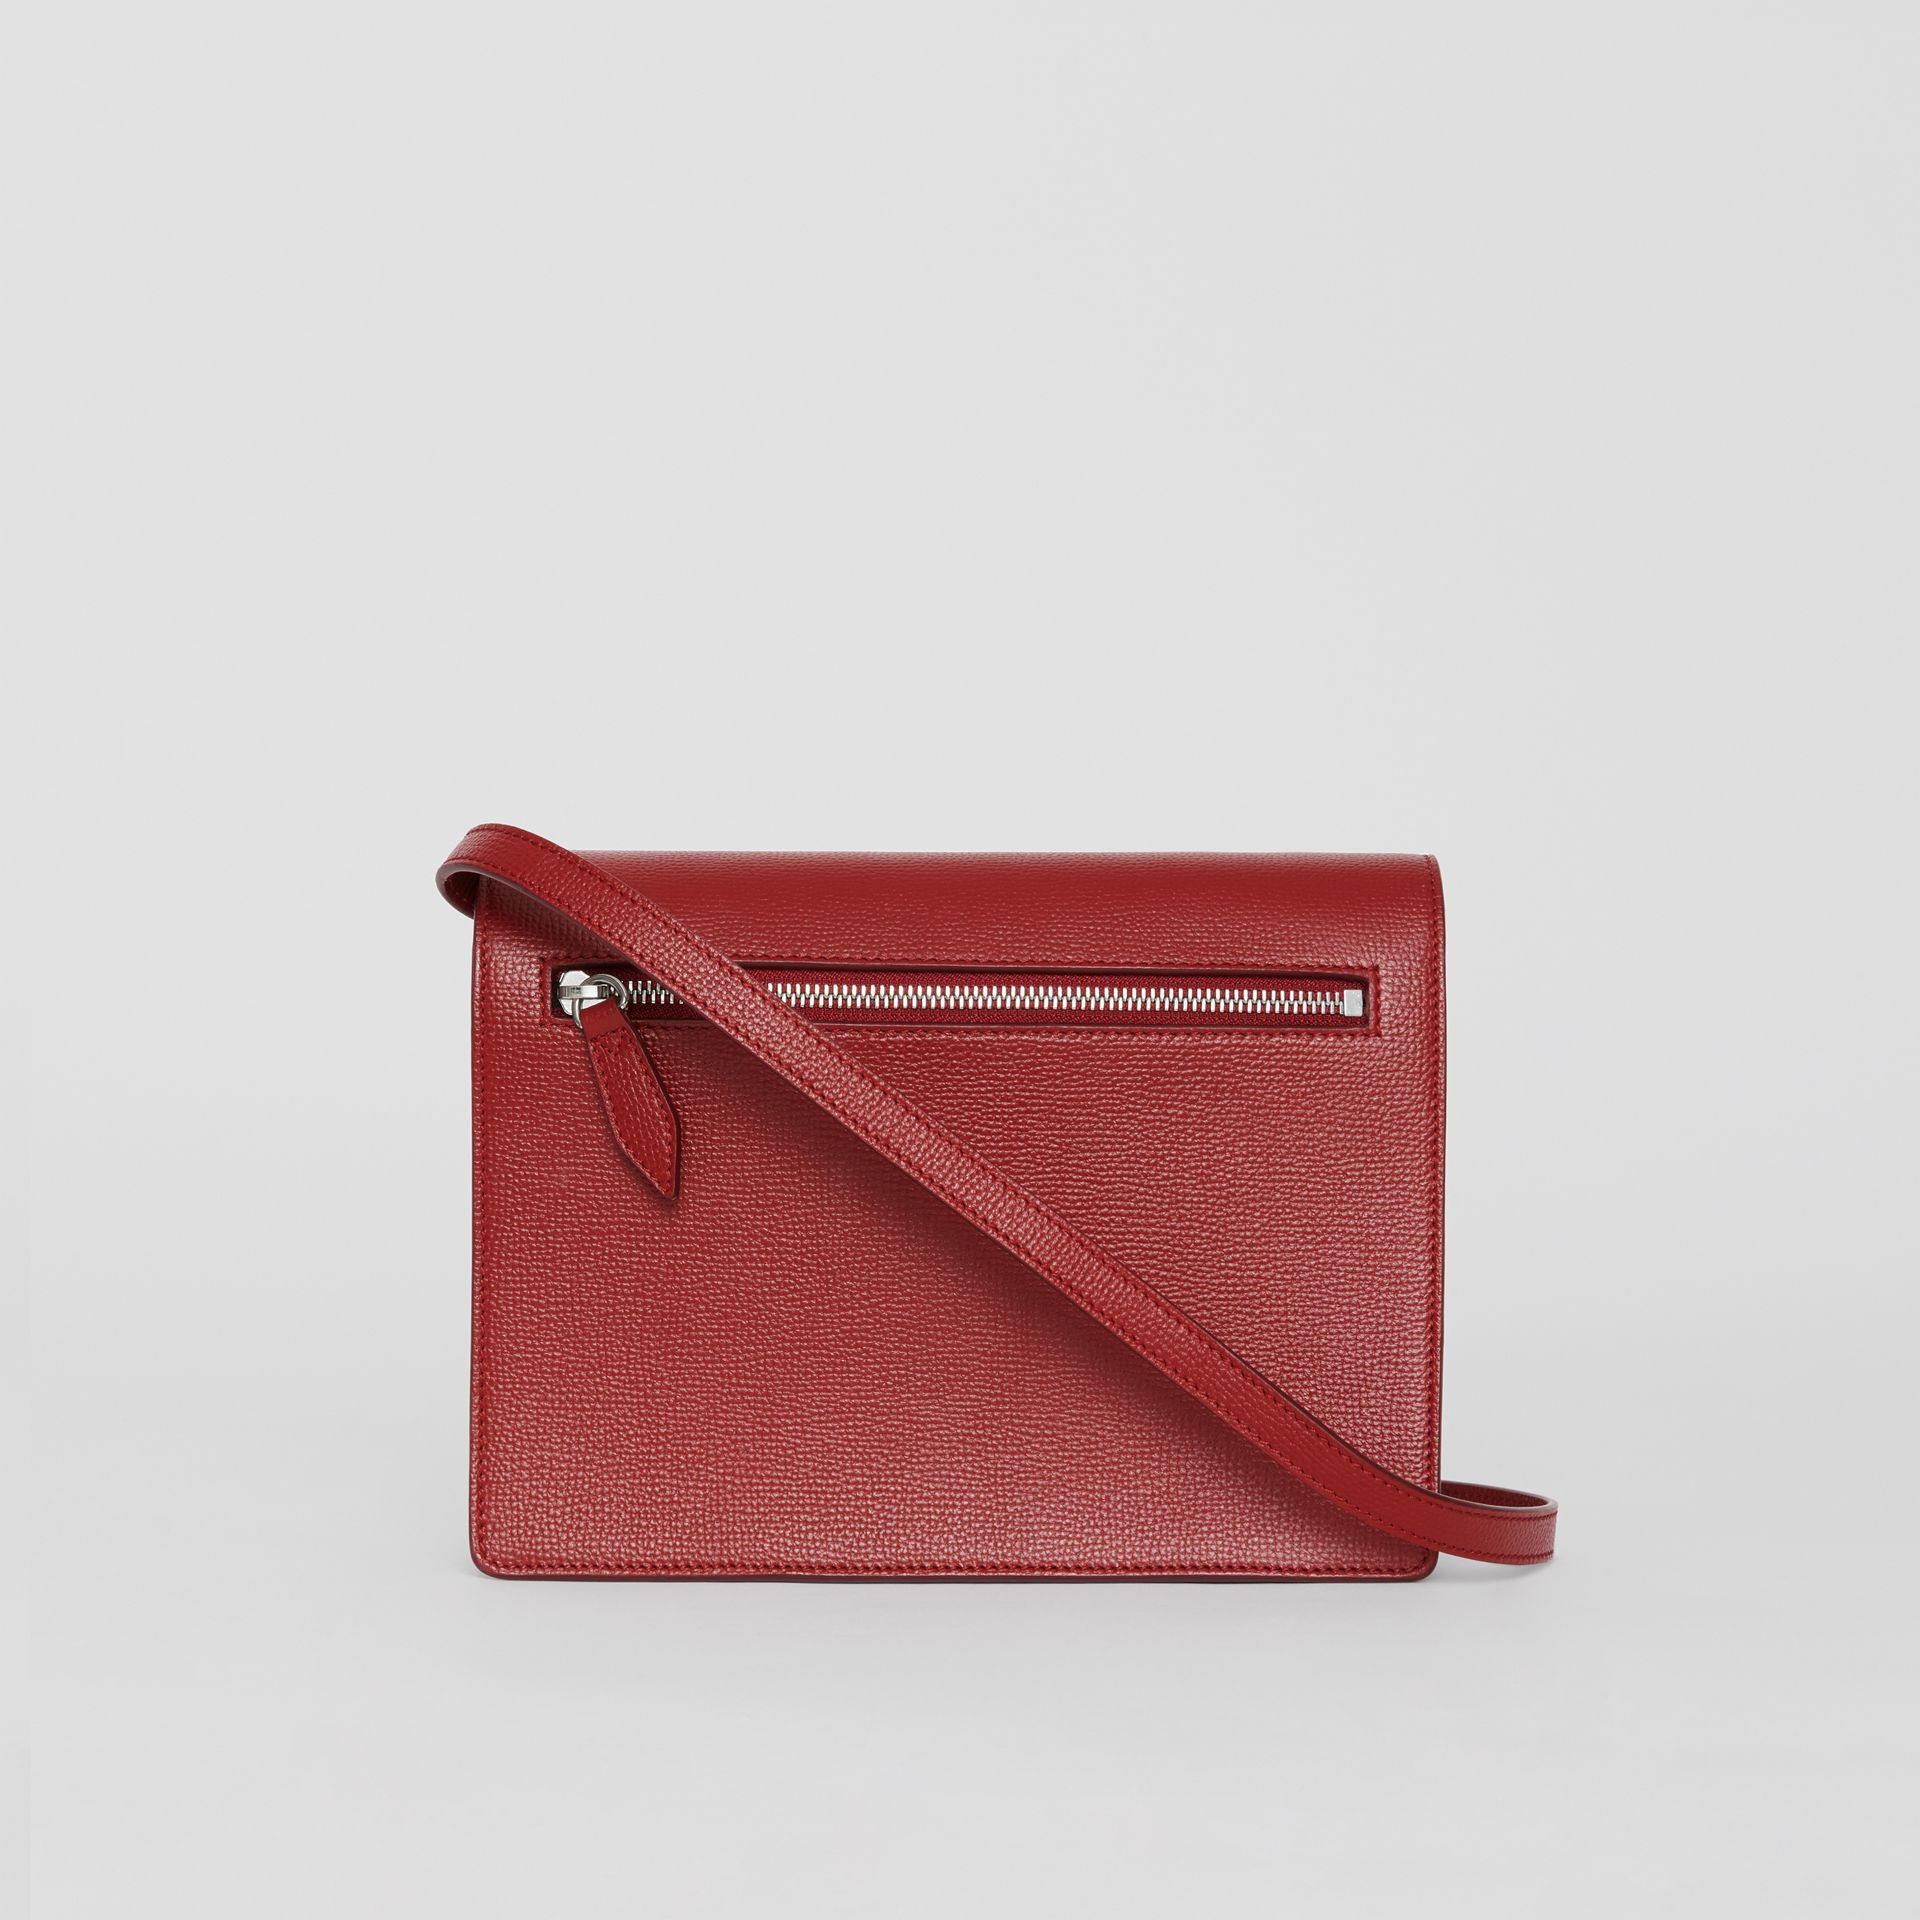 Small Vintage Check and Leather Crossbody Bag in Crimson - Women | Burberry Hong Kong - gallery image 5